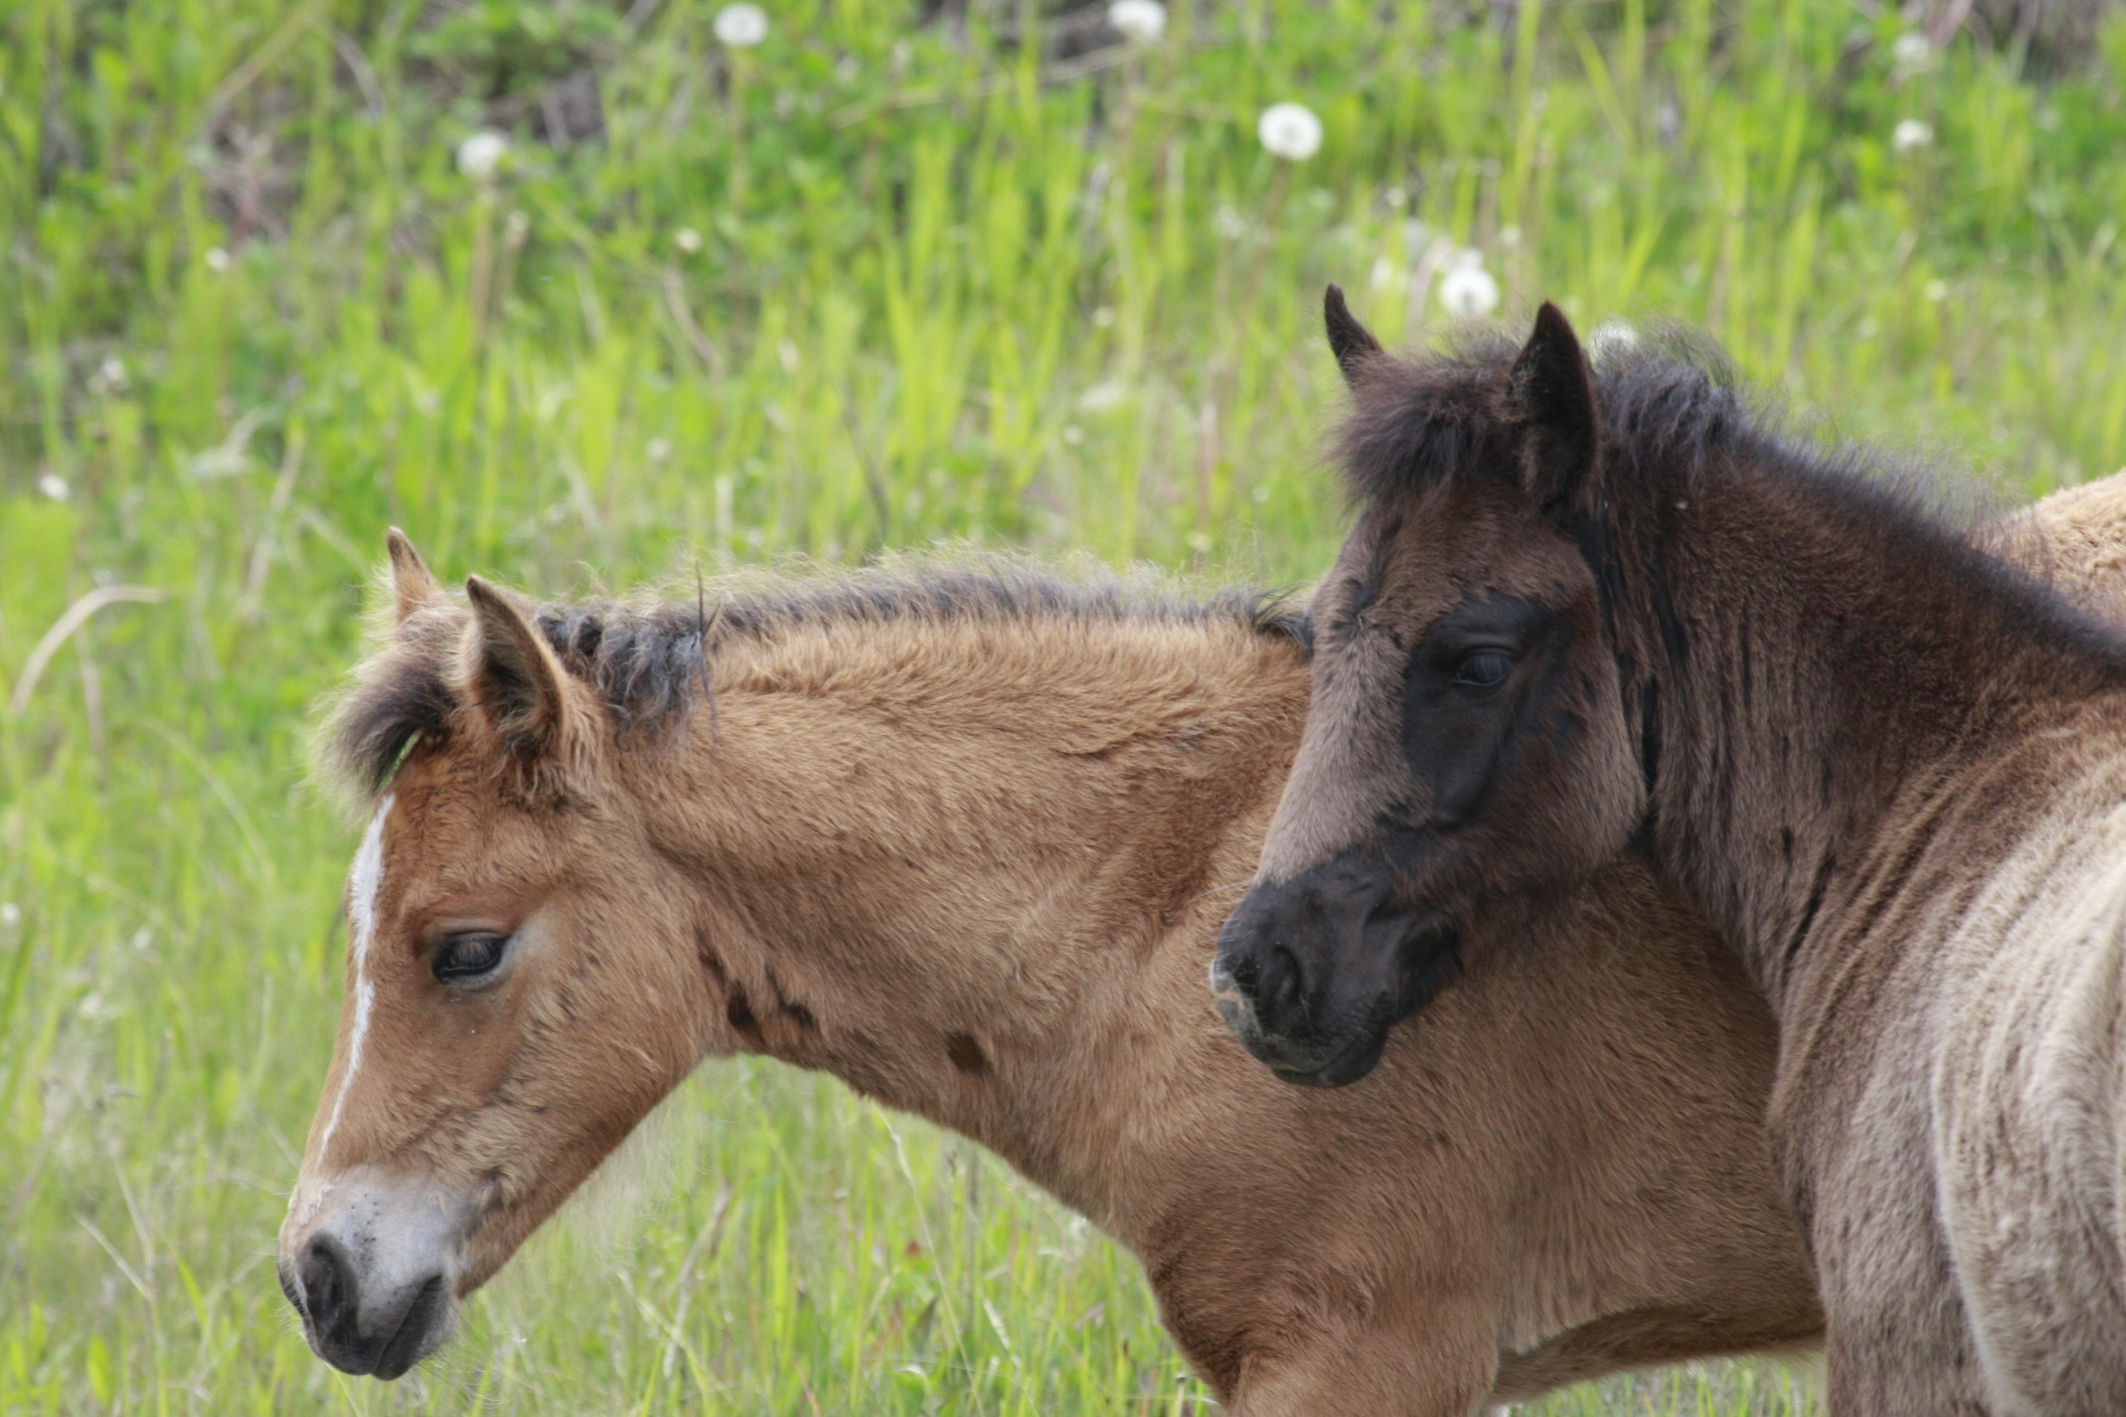 Angelo Avlonitis Wild Horses Young Albertans